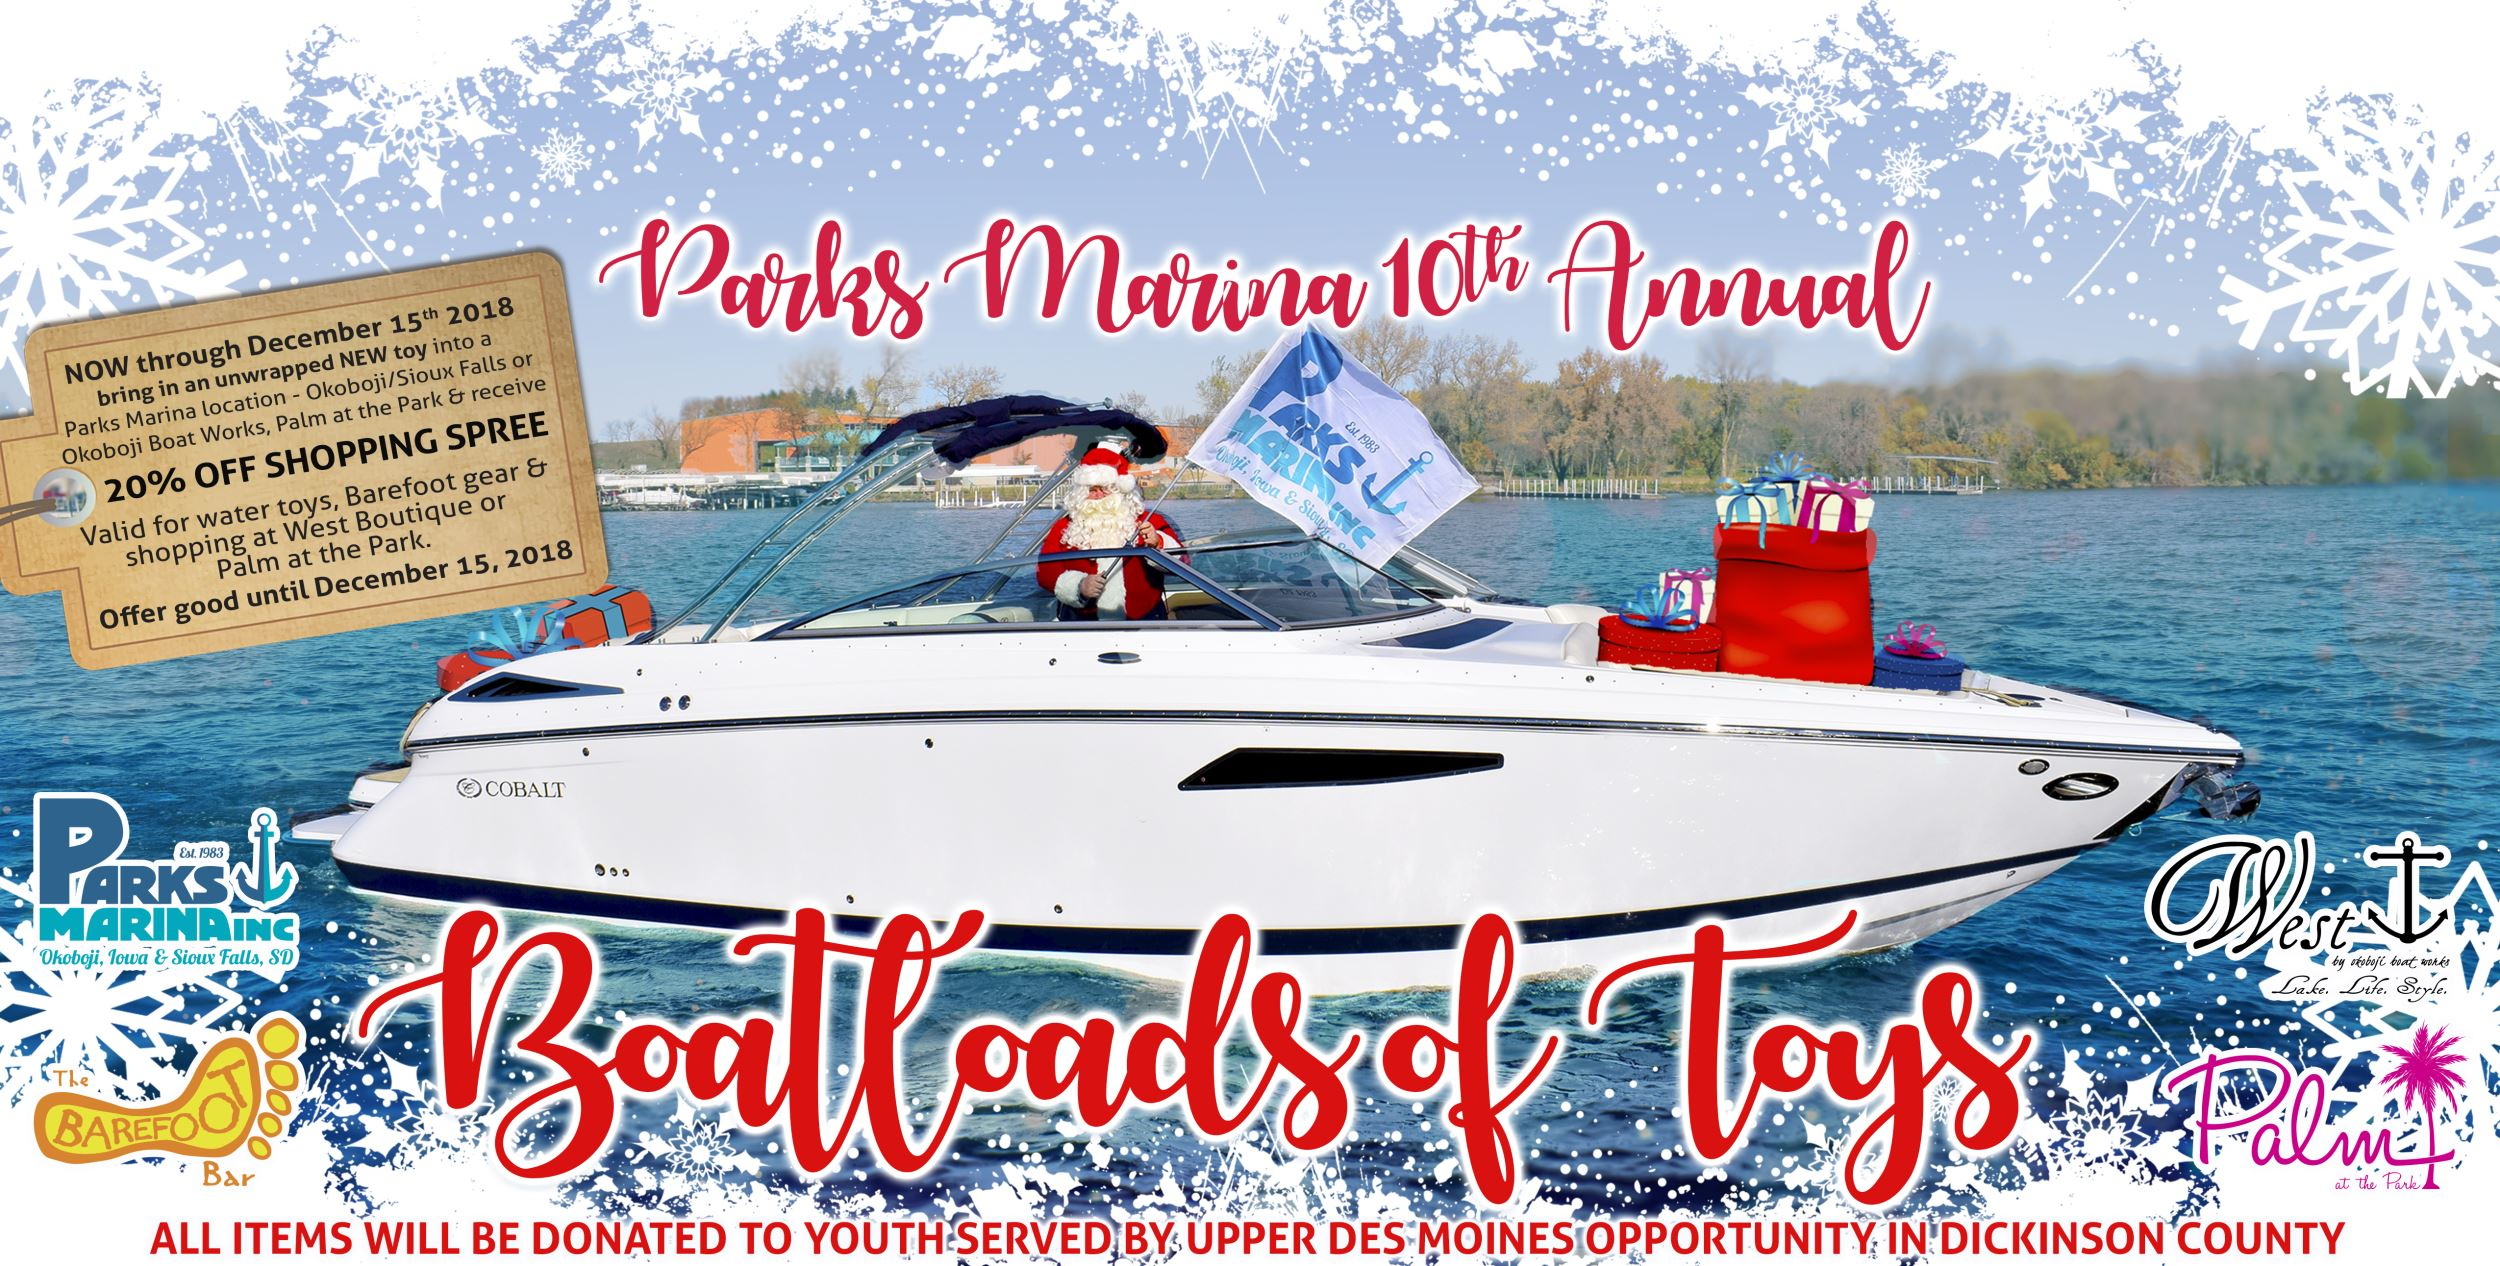 Boatloads of Toys at Parks Marina